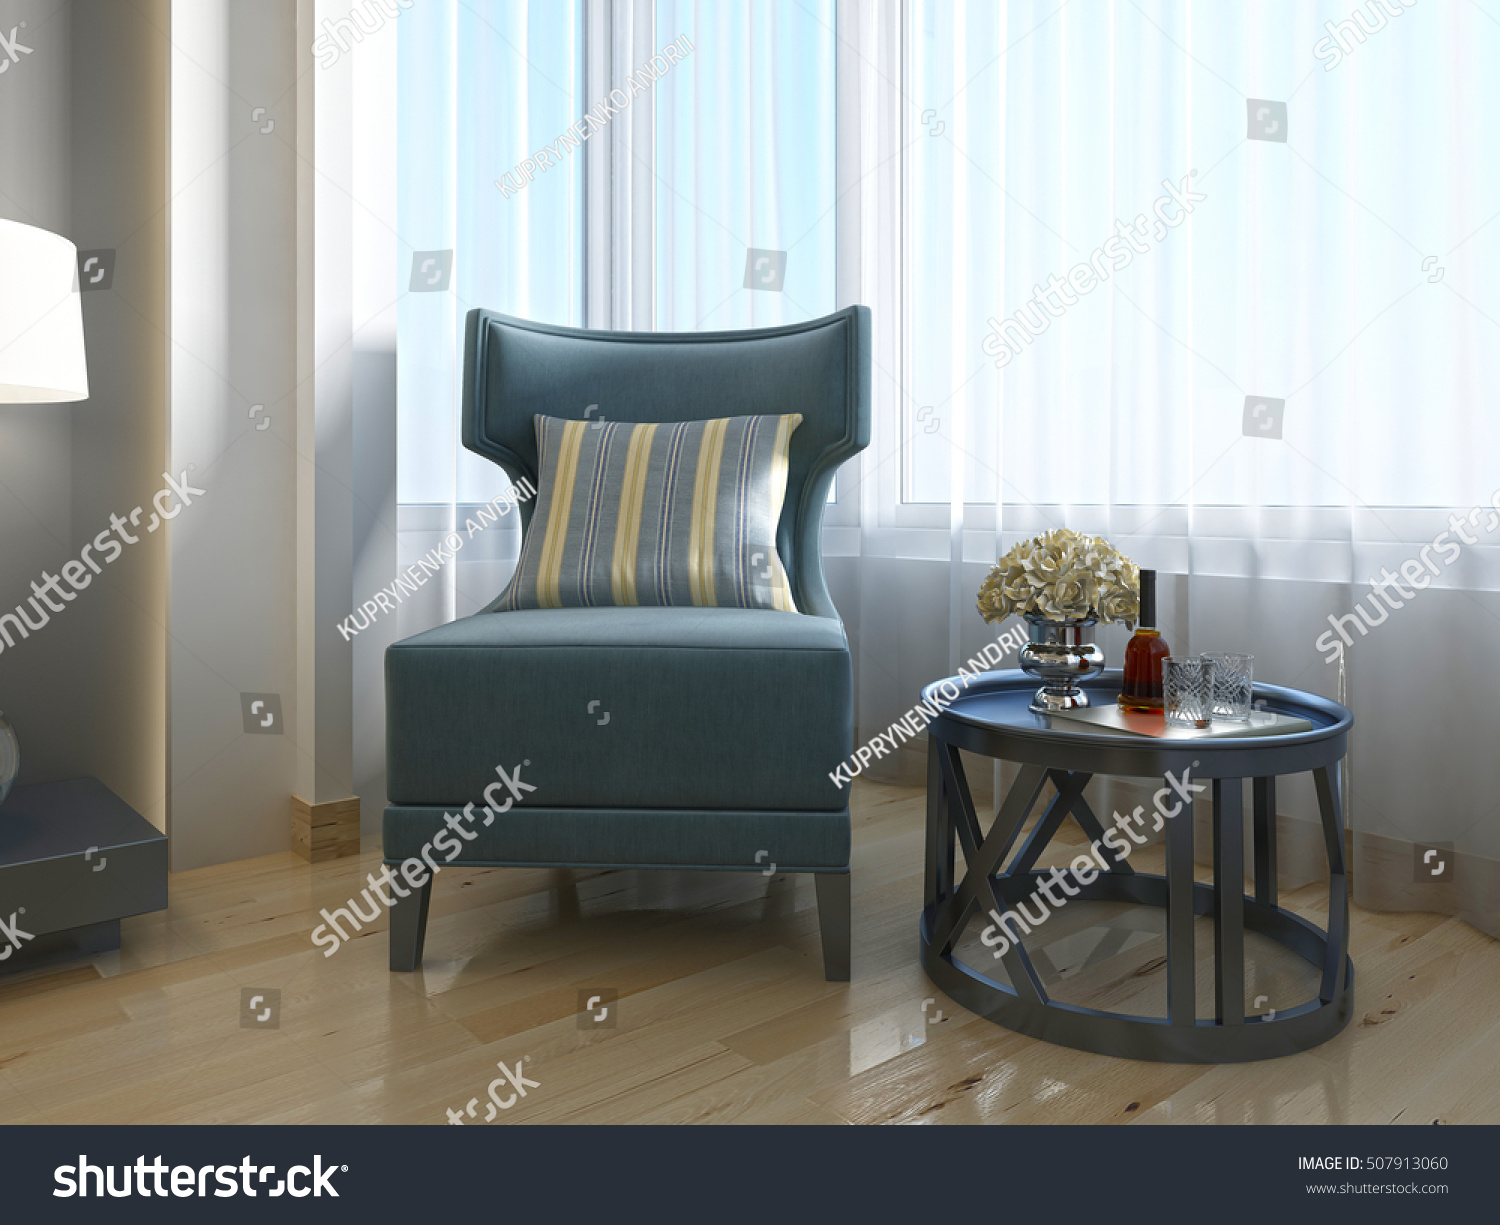 Royalty Free Stock Illustration Of Luxurious Lounge Chair